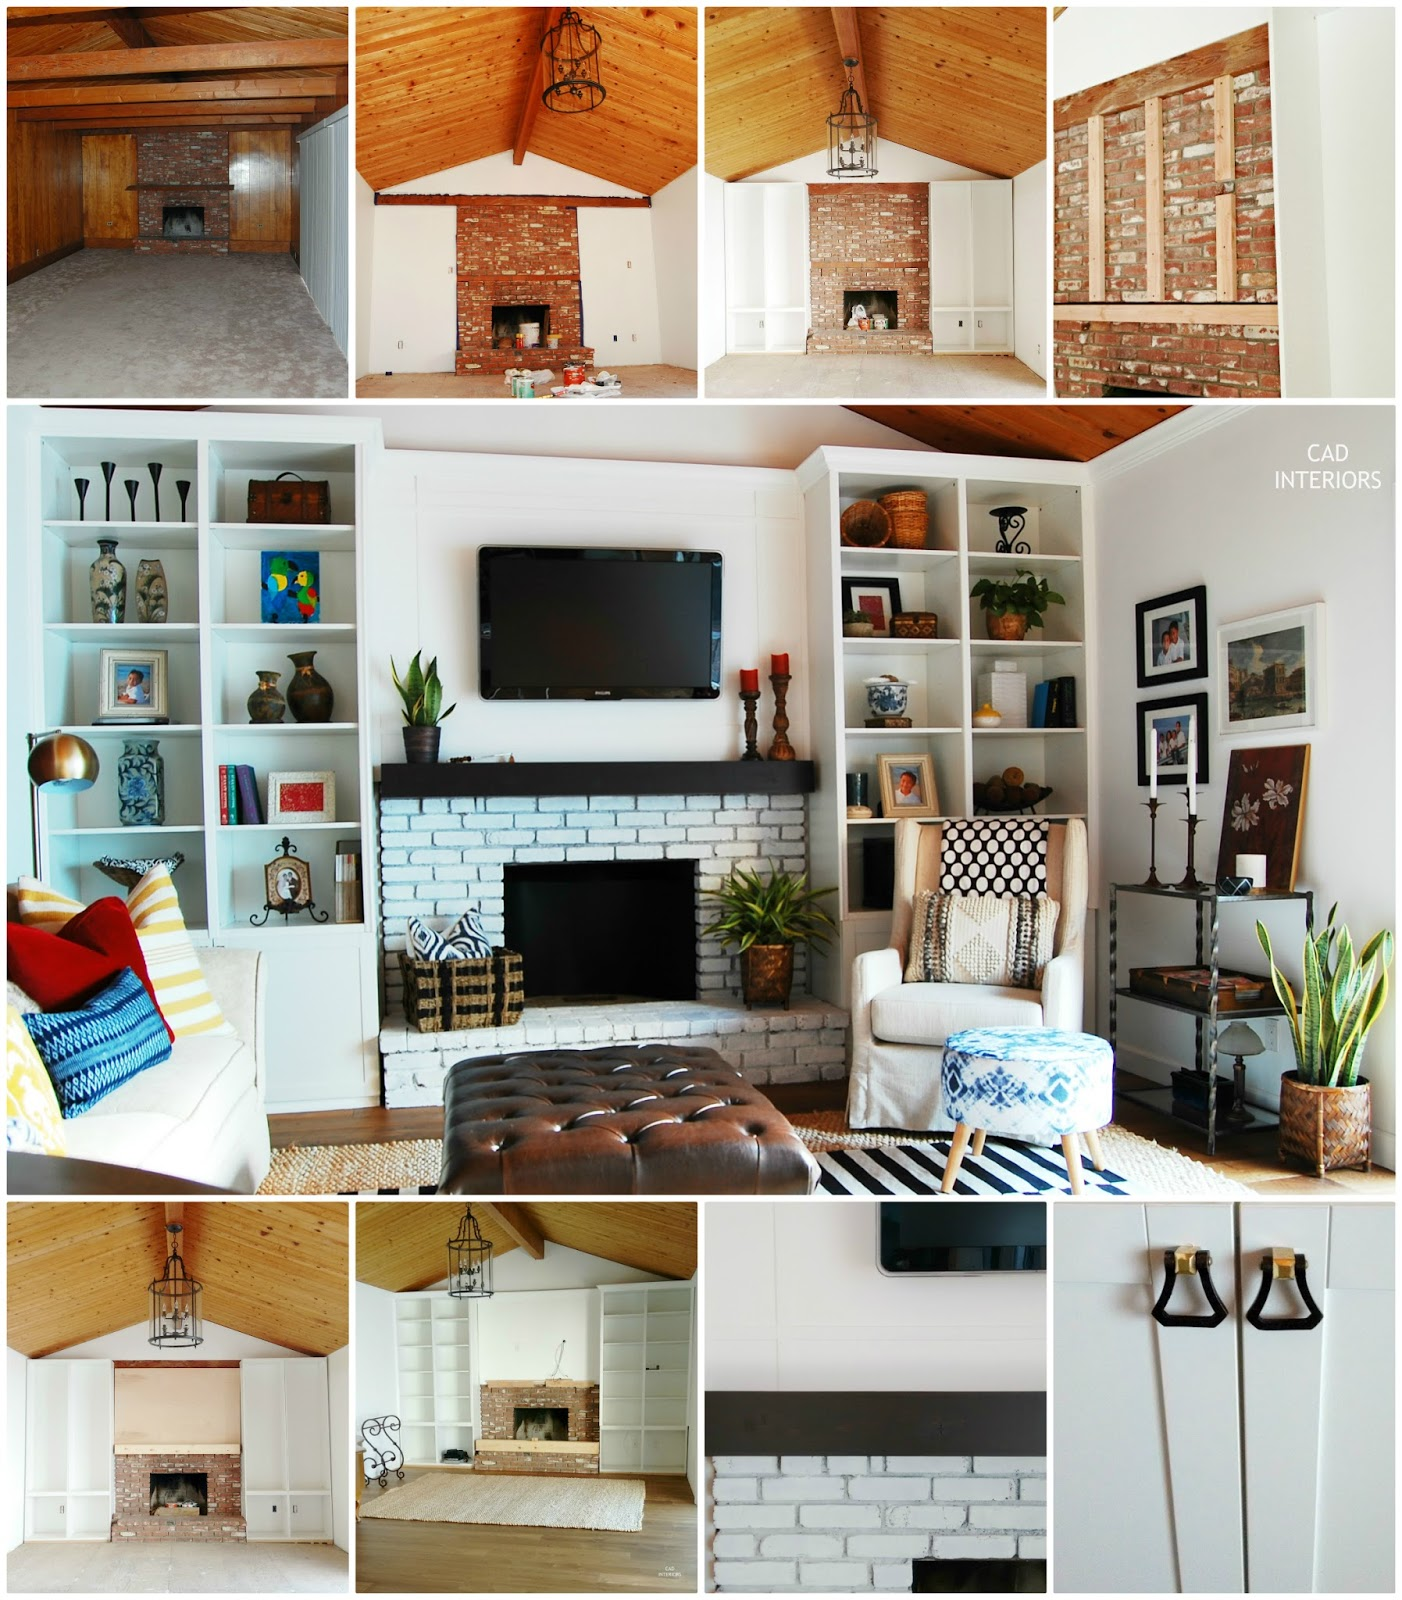 diy ikea built-in cabinetry fireplace brick whitewash makeover modern eclectic bohemian vintage transitional interior decorating design orc one room challenge